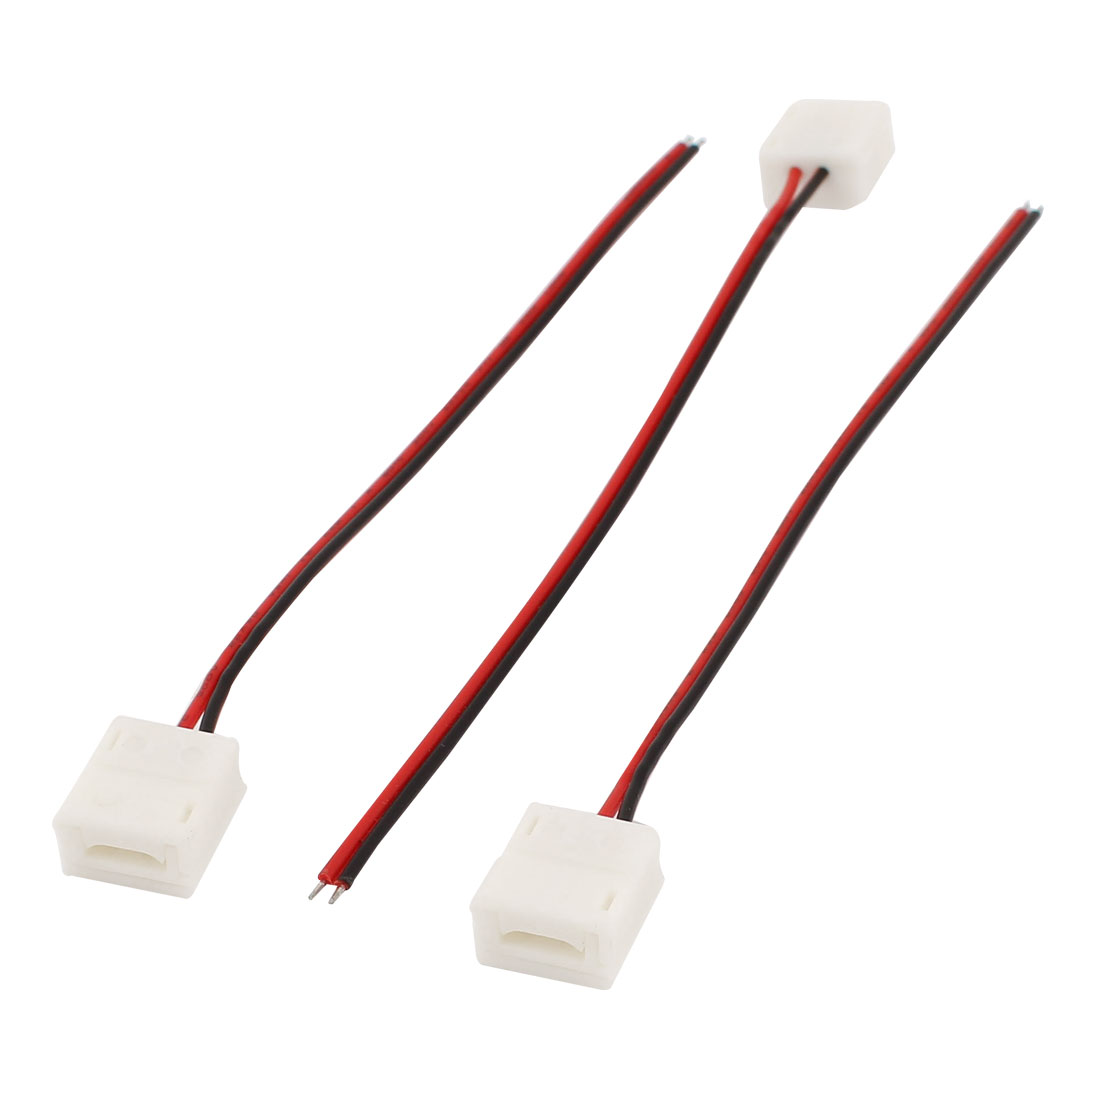 3pcs 15cm Long 2 Pole Terminal Wire Connector for 3528 RGB LED Strip